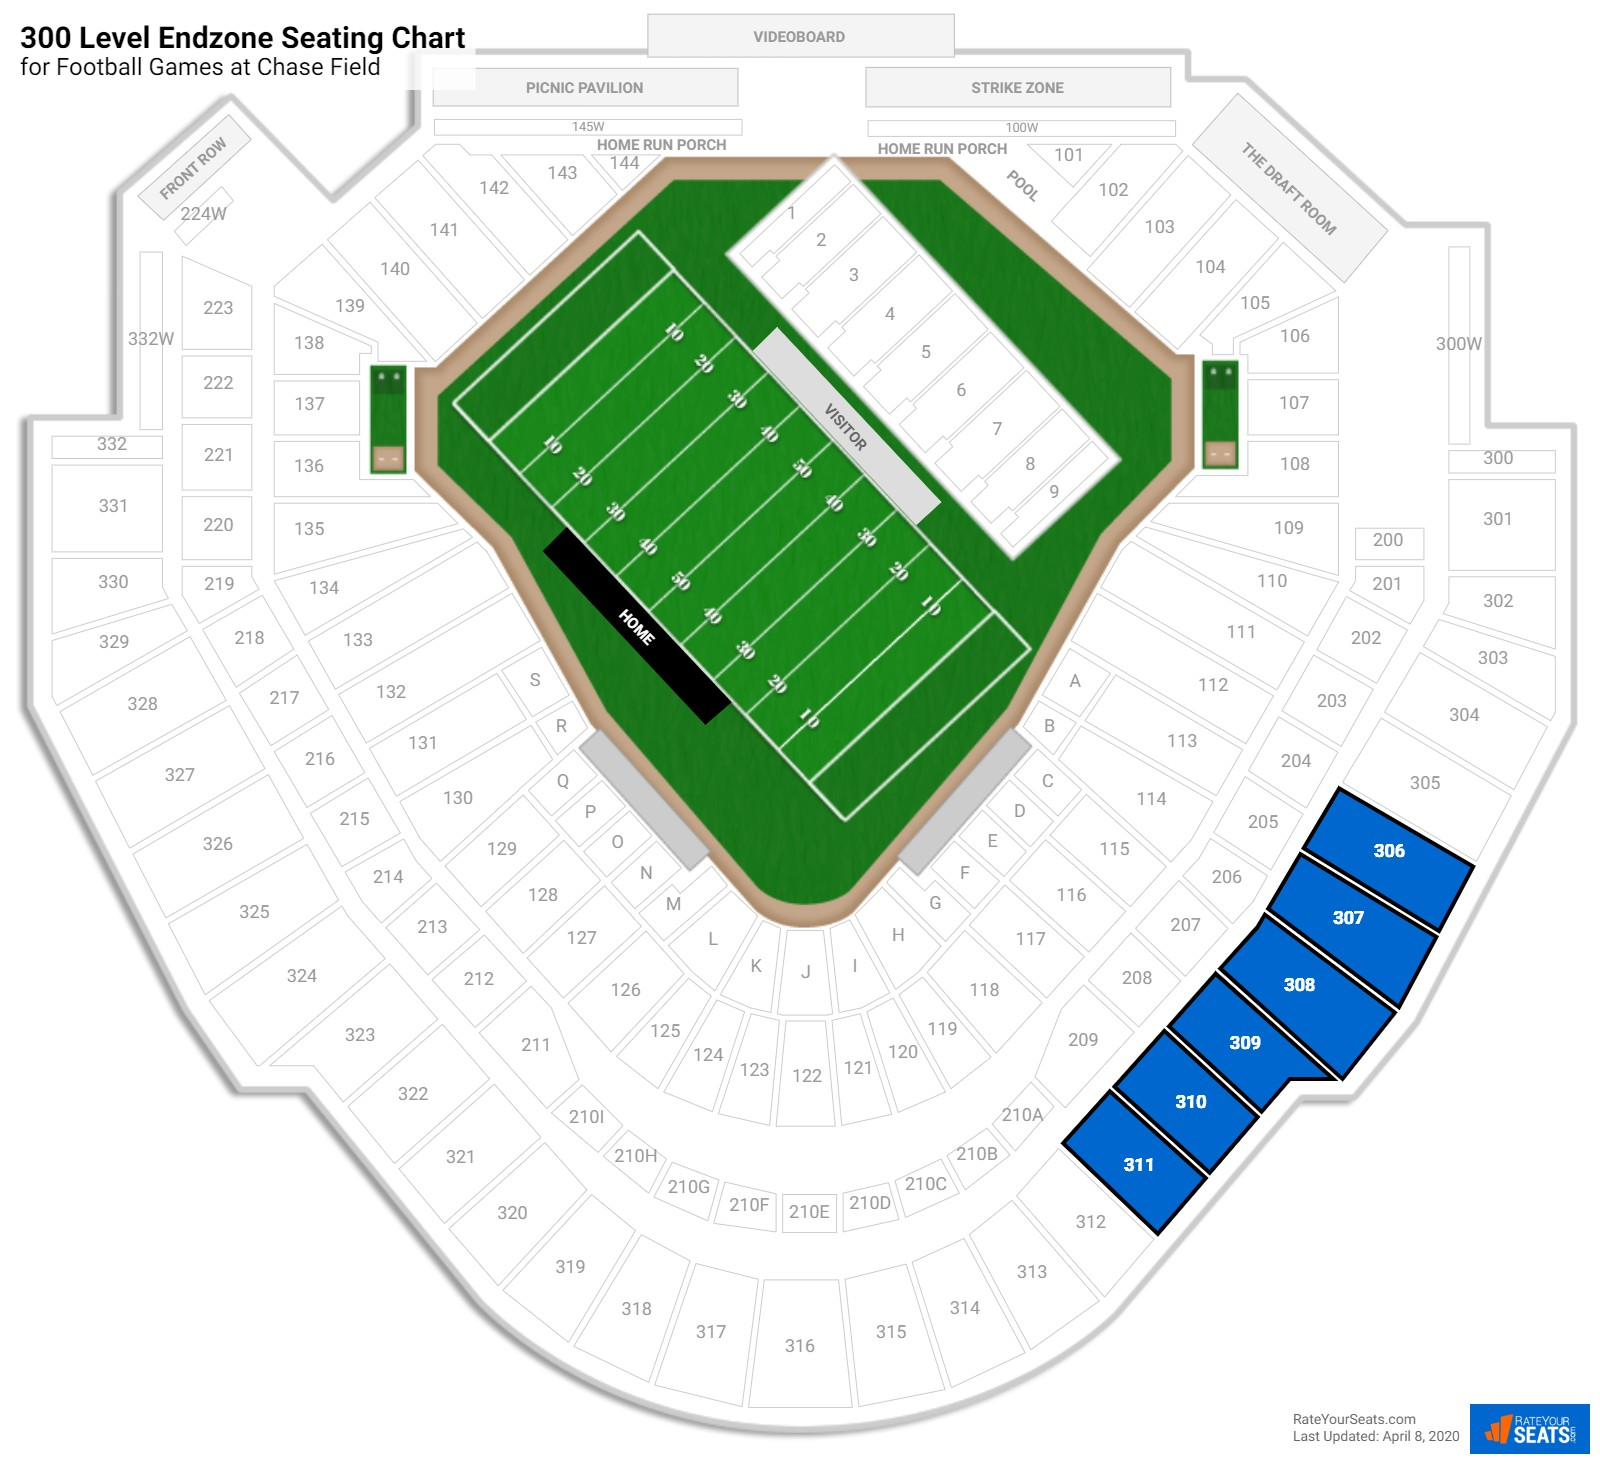 Chase Field 300 Level Endzone seating chart